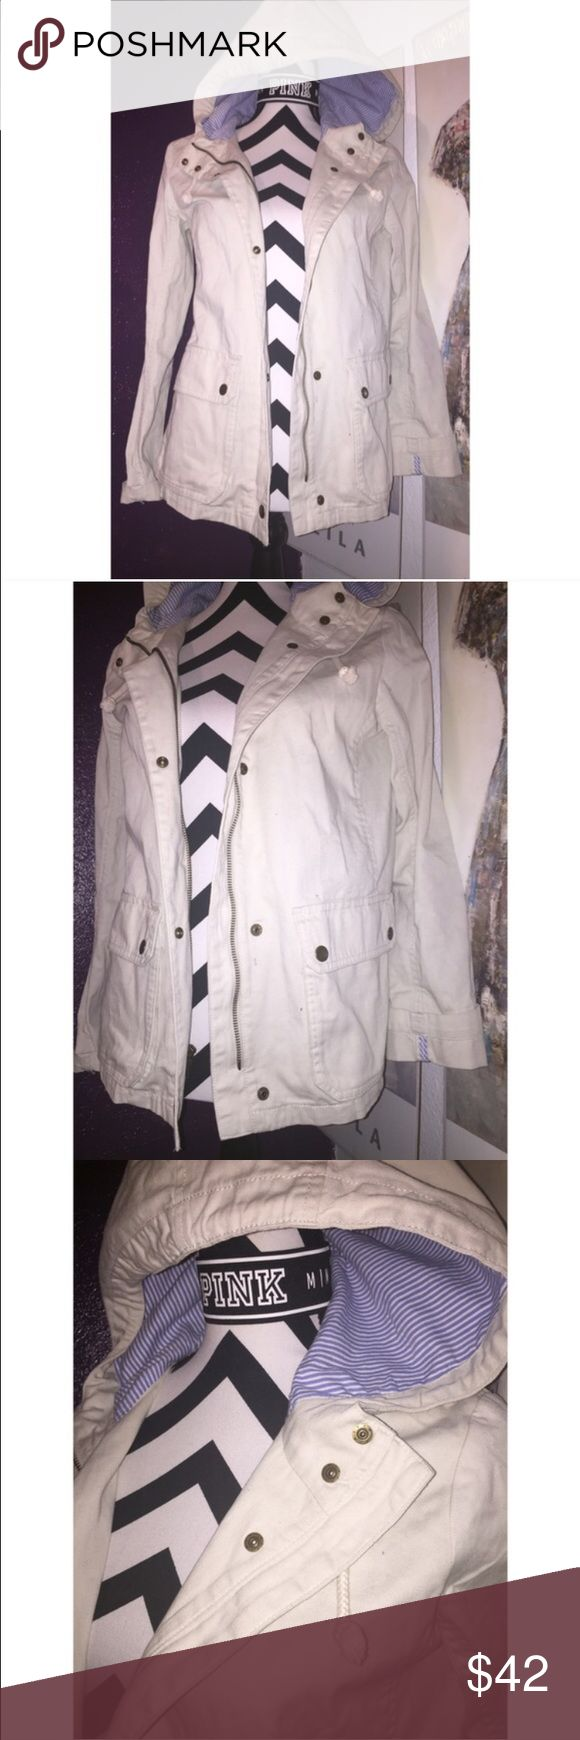 Gap khaki parka xs Women's GAP parka size extra small. Color is beige/ light khaki. It has a zipper and buttons for closure. Also has a hood. Pre owned but in excellent condition with no signs of flaws. GAP Jackets & Coats